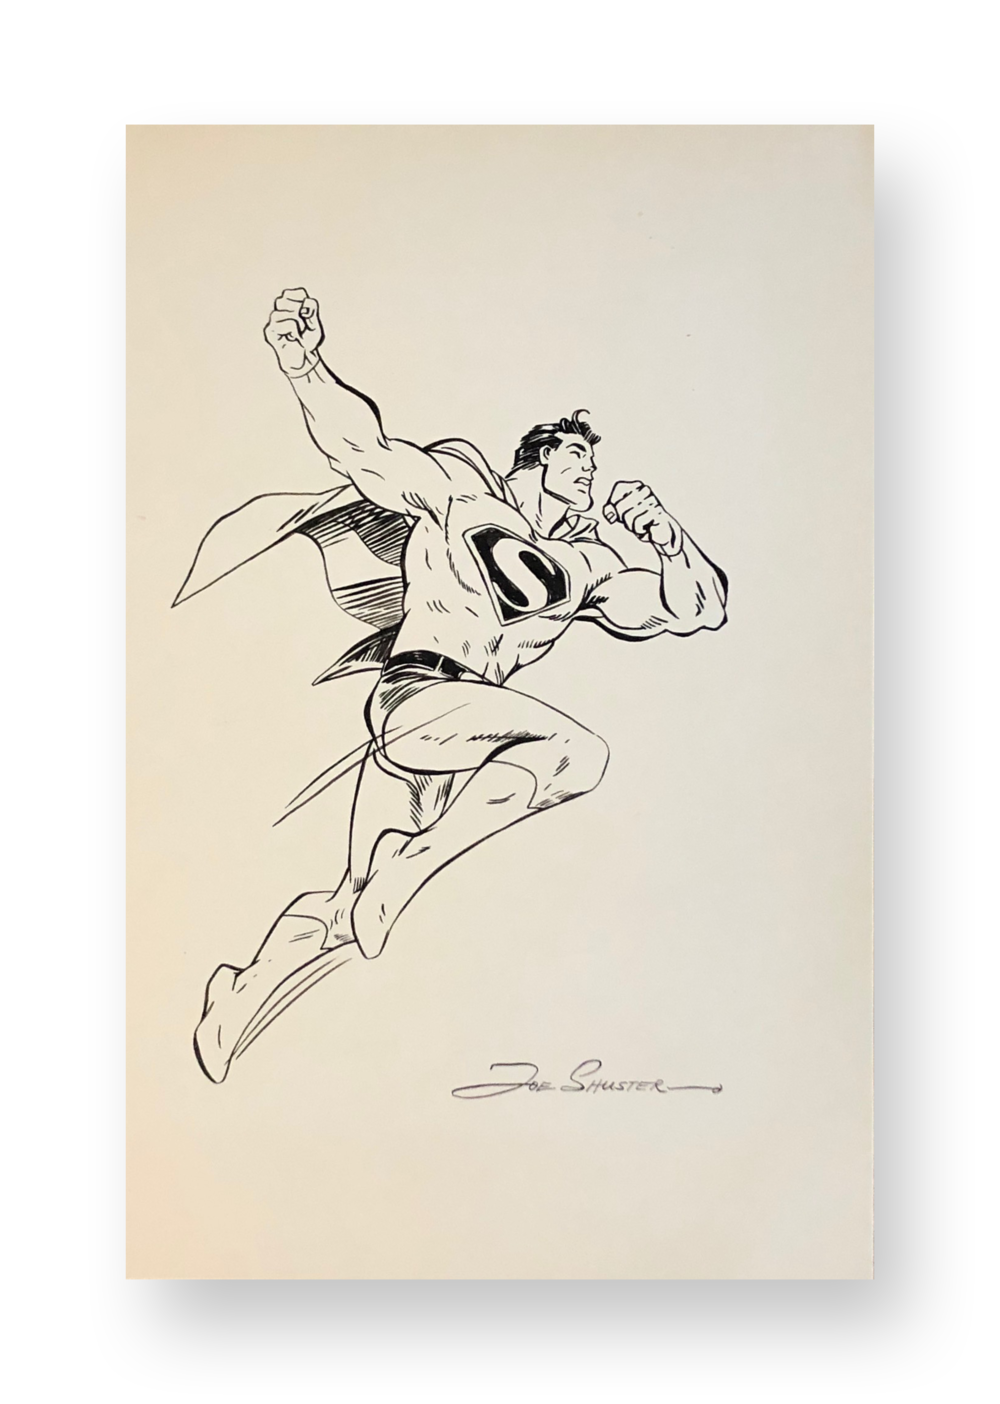 "Joe Shuster  Superman  ""Up, Up and Away""  Original vintage illustration  Ink on paper  8 x 12.25 inches  Circa 1970's"